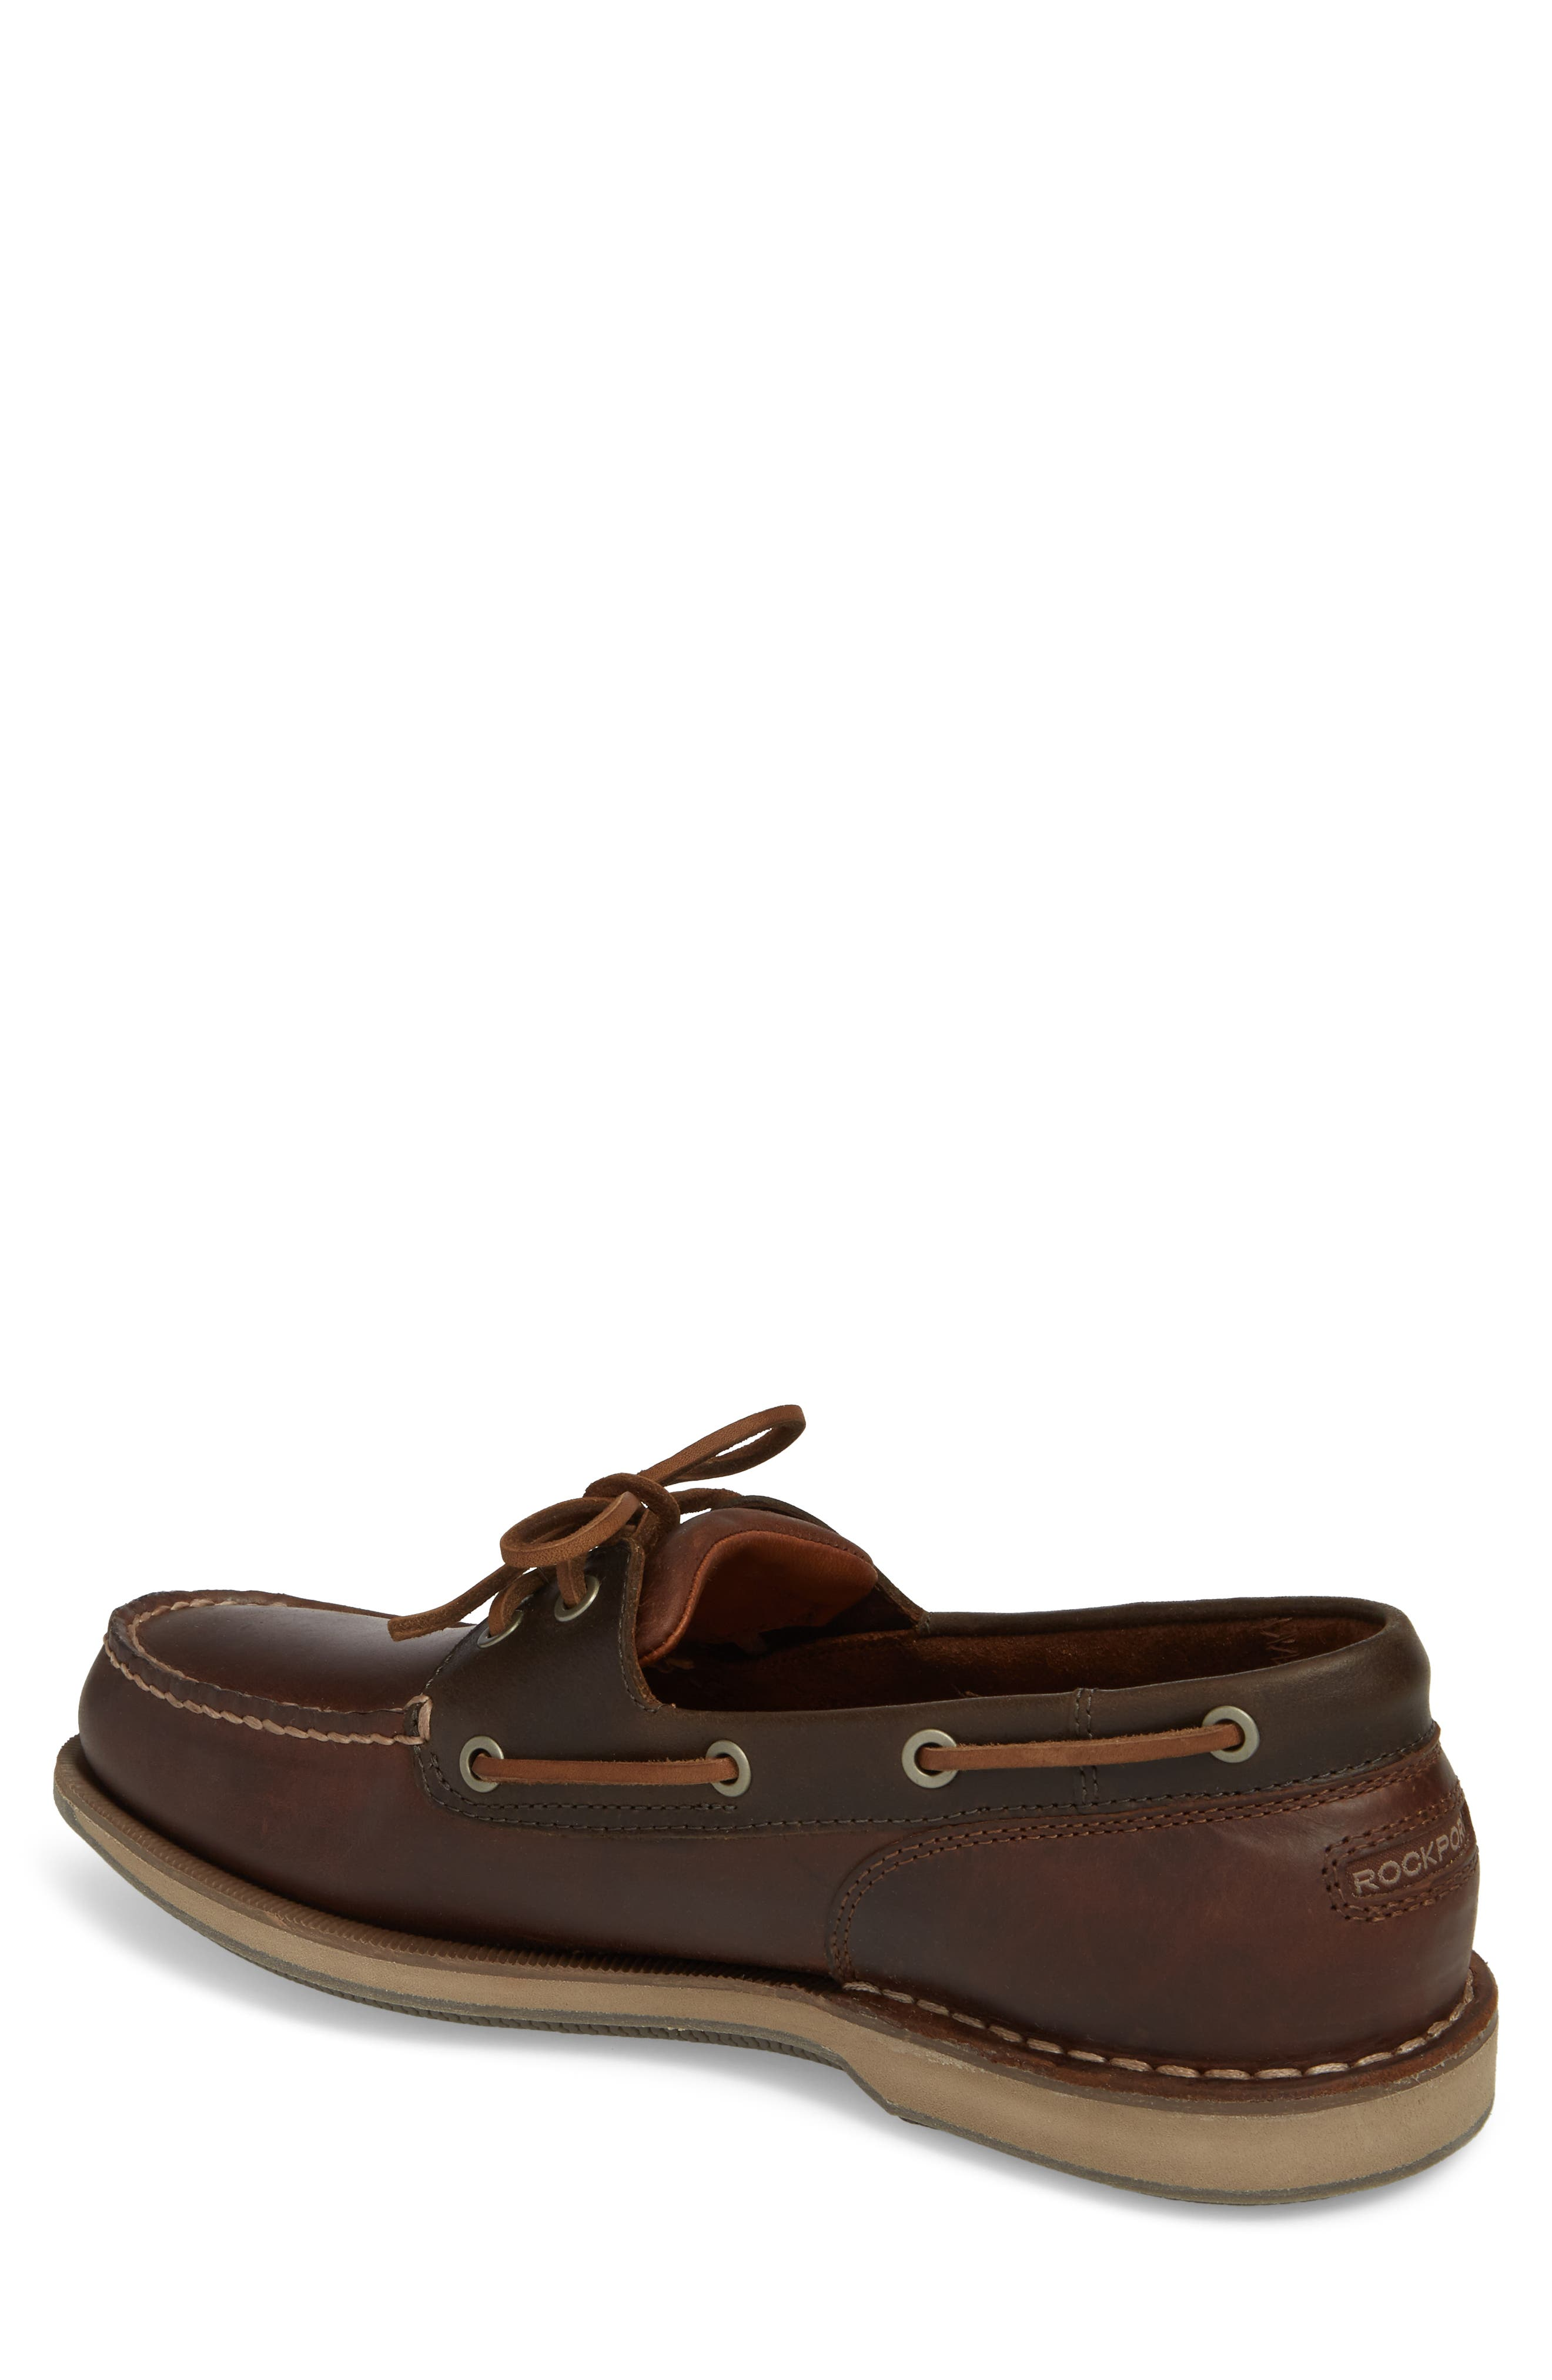 ROCKPORT, 'Perth' Boat Shoe, Alternate thumbnail 2, color, DARK BROWN LEATHER